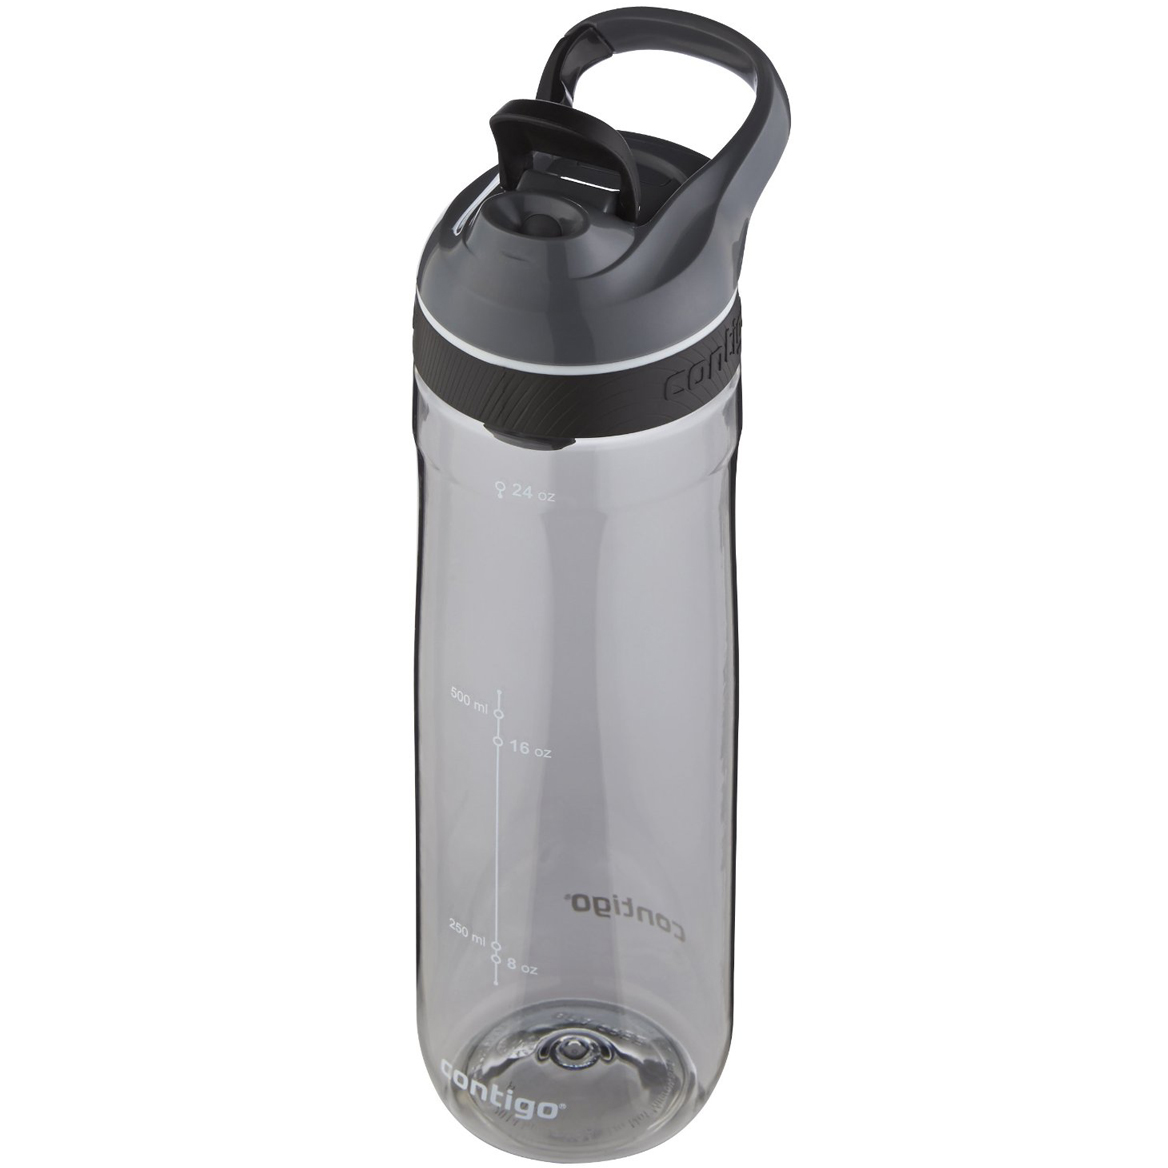 Contigo-24-oz-Cortland-Autoseal-Water-Bottle miniature 16